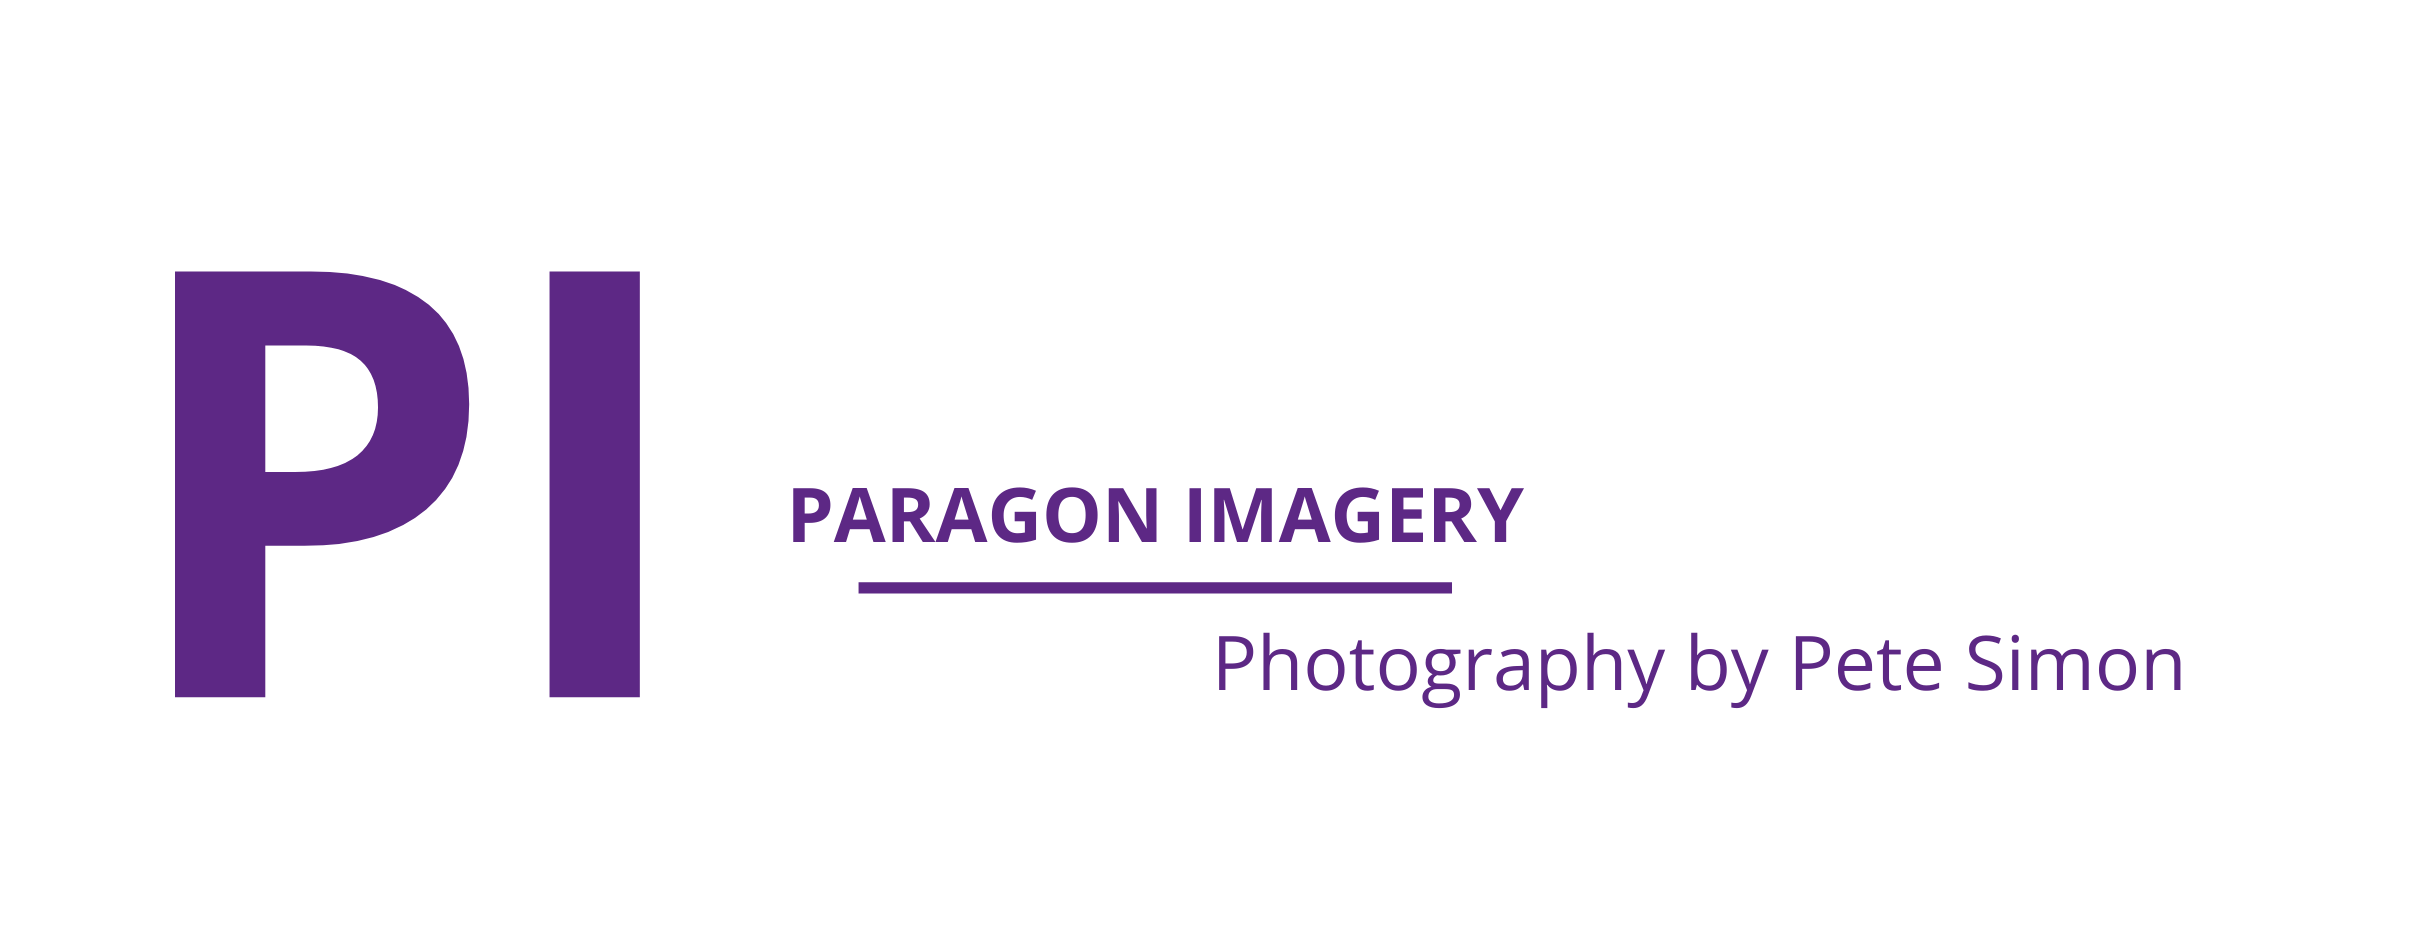 Paragon Imagery Photography by Pete Simon